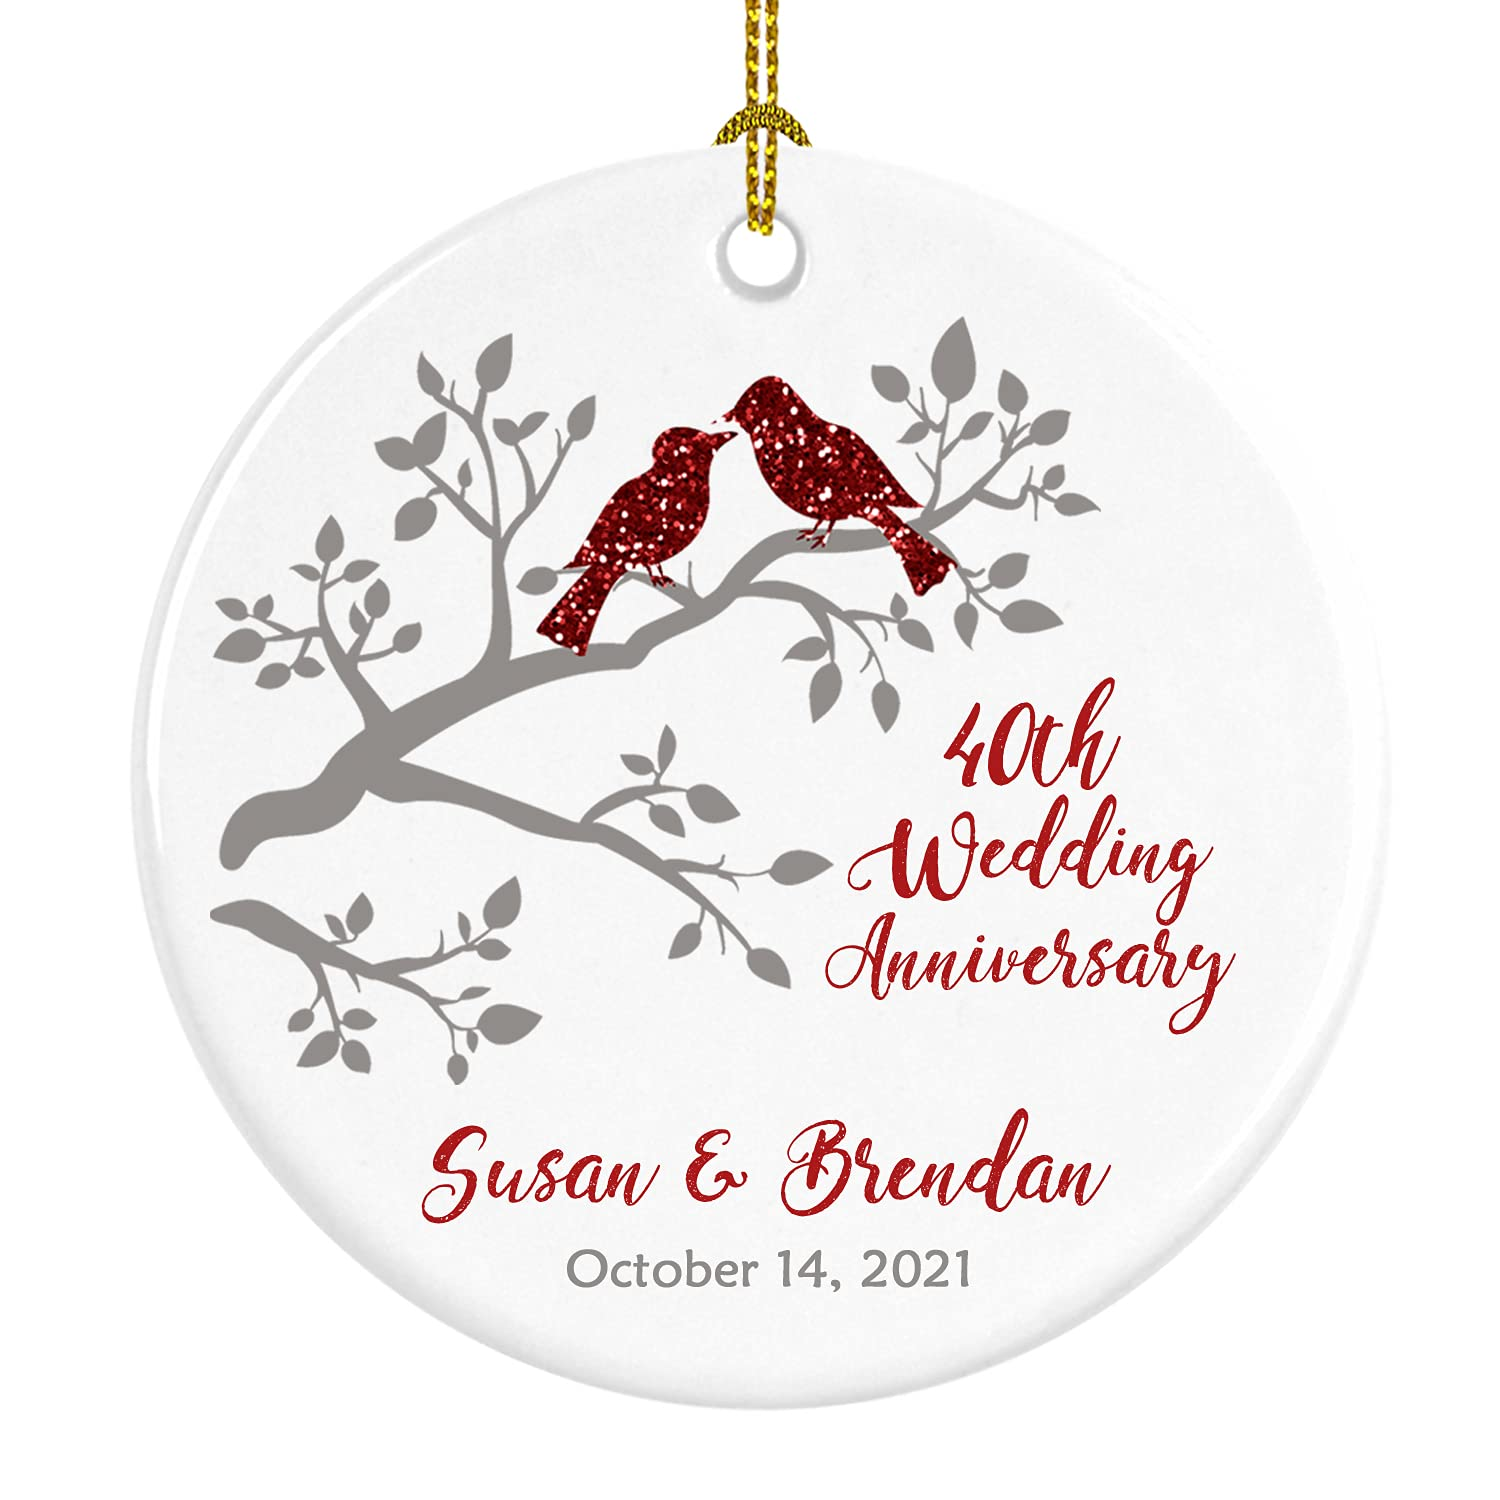 Anniversary Christmas Ornament Sale price Manufacturer regenerated product 40th an